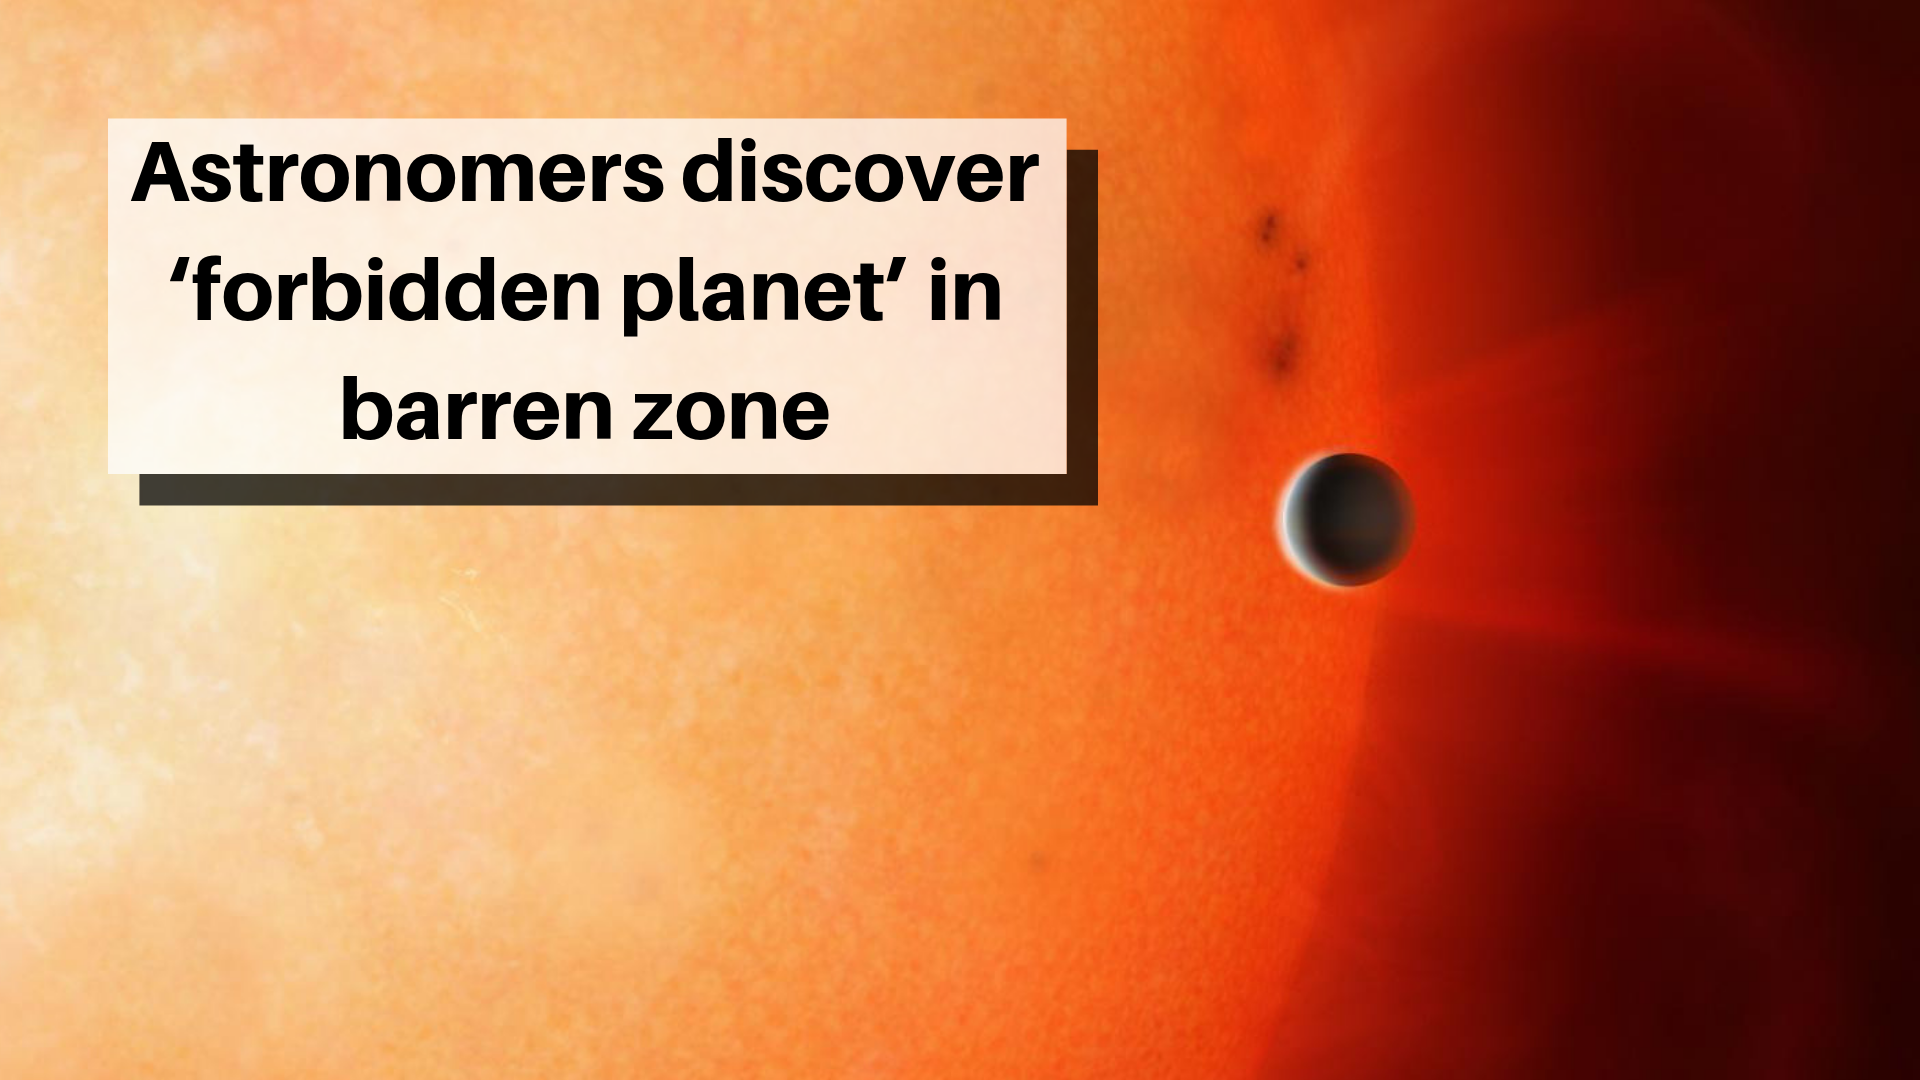 Astronomers Discover Forbidden Planet In Barren Zone